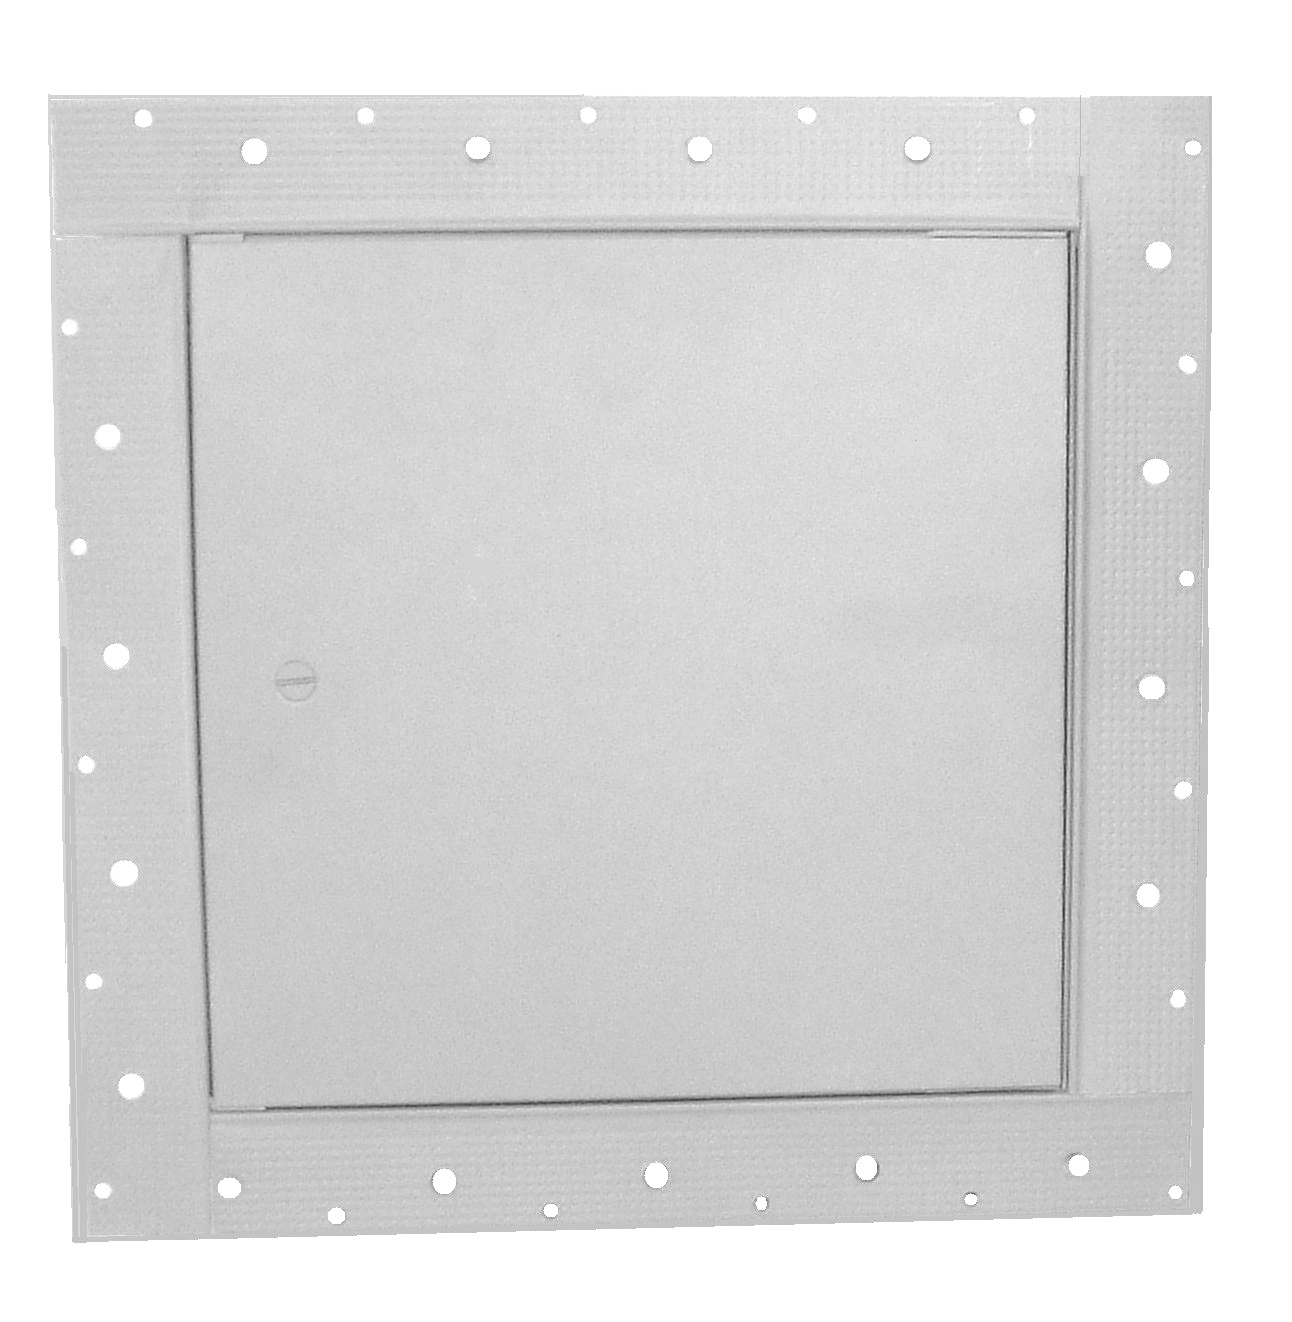 Tmw Flush Access Panels With Wallboard Bead For A